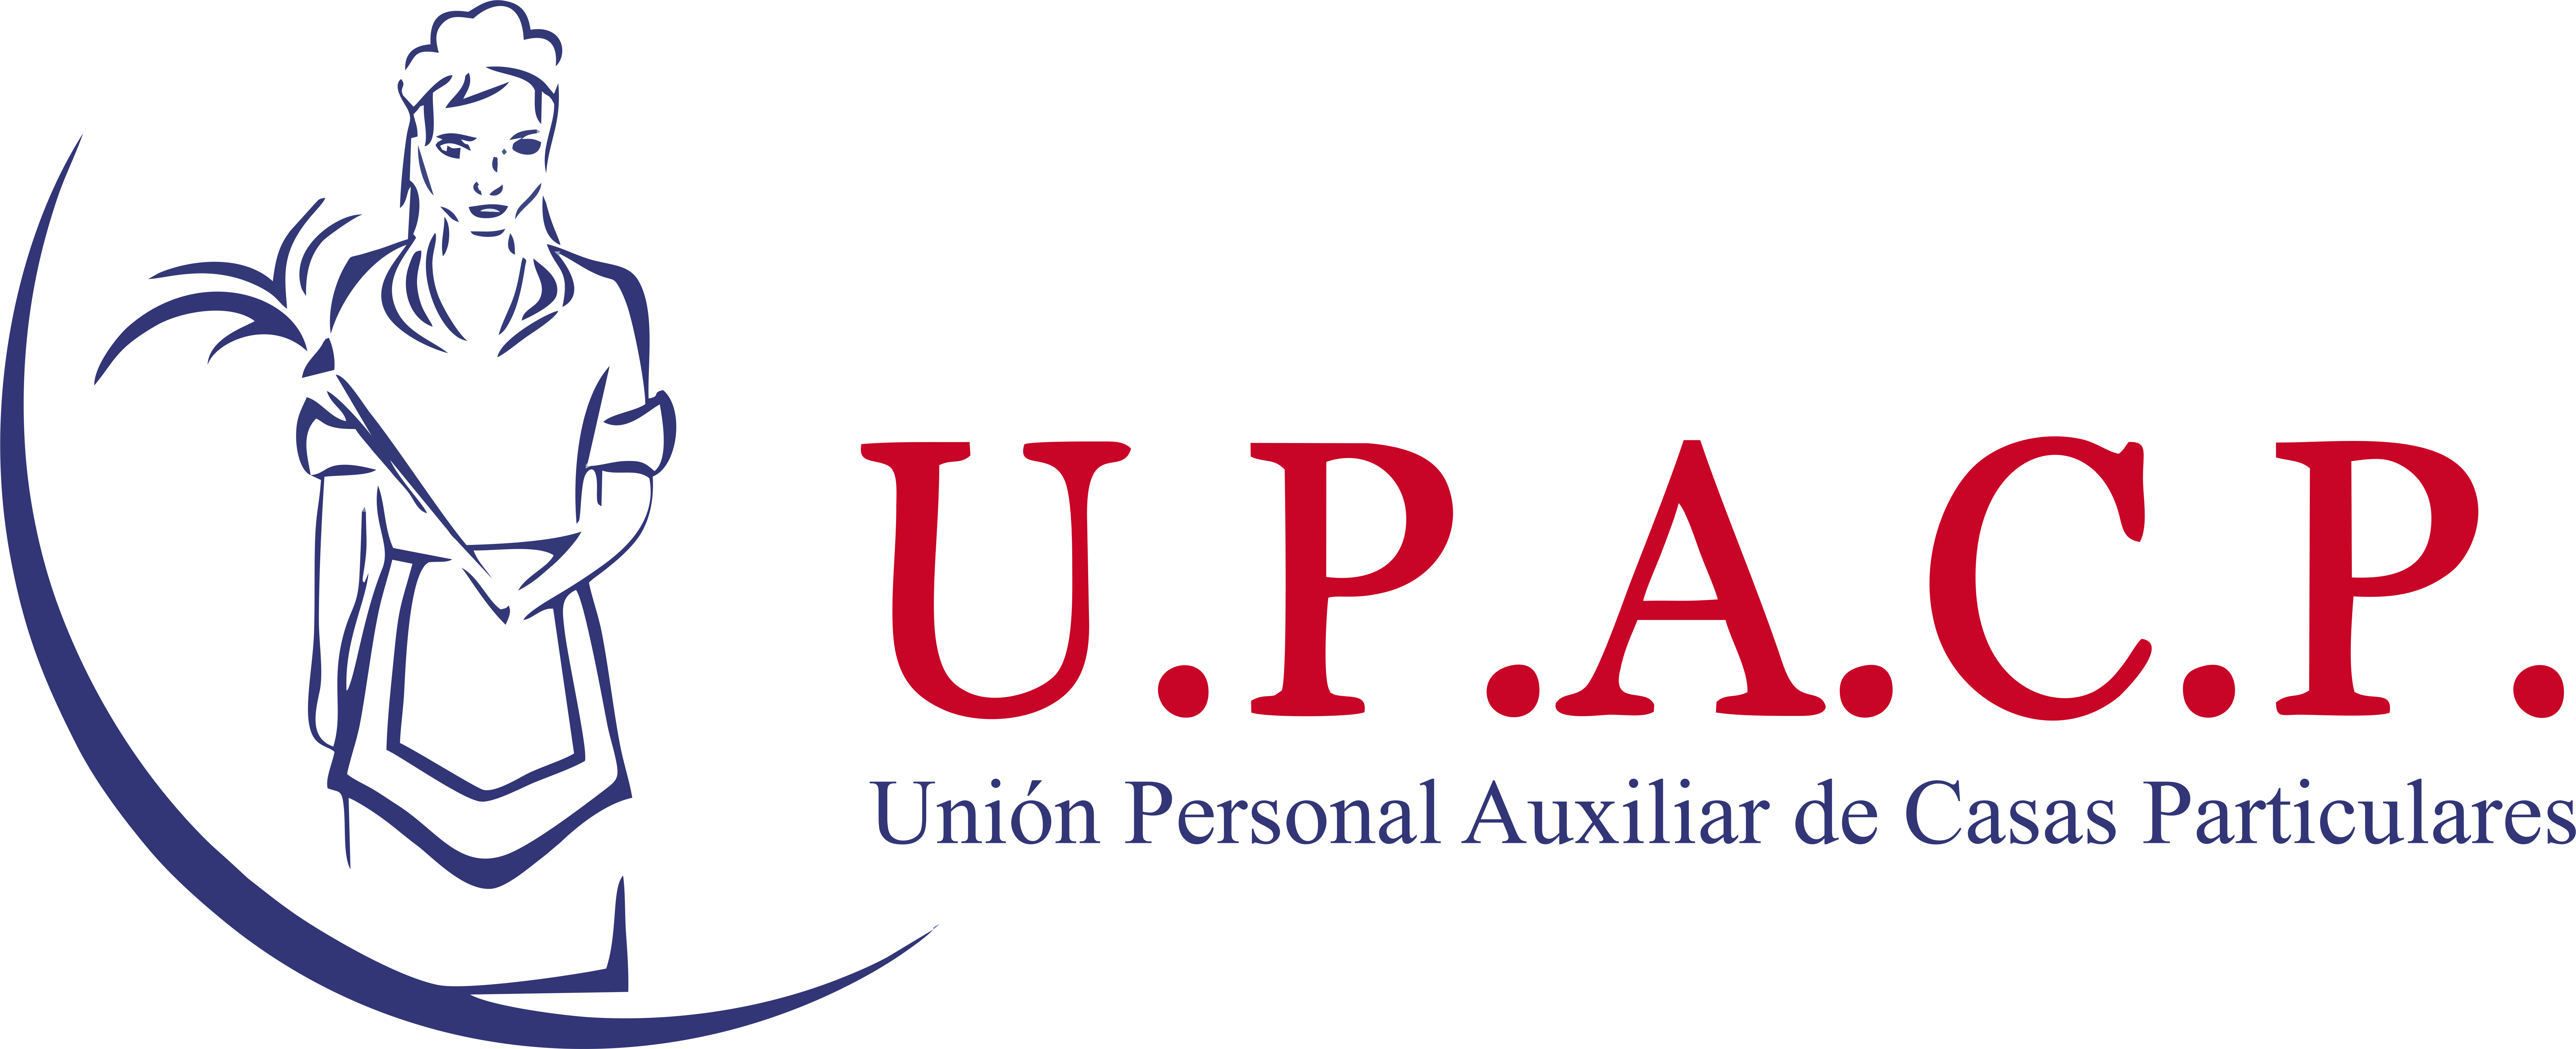 Logo UPACP HD - COMPLETO